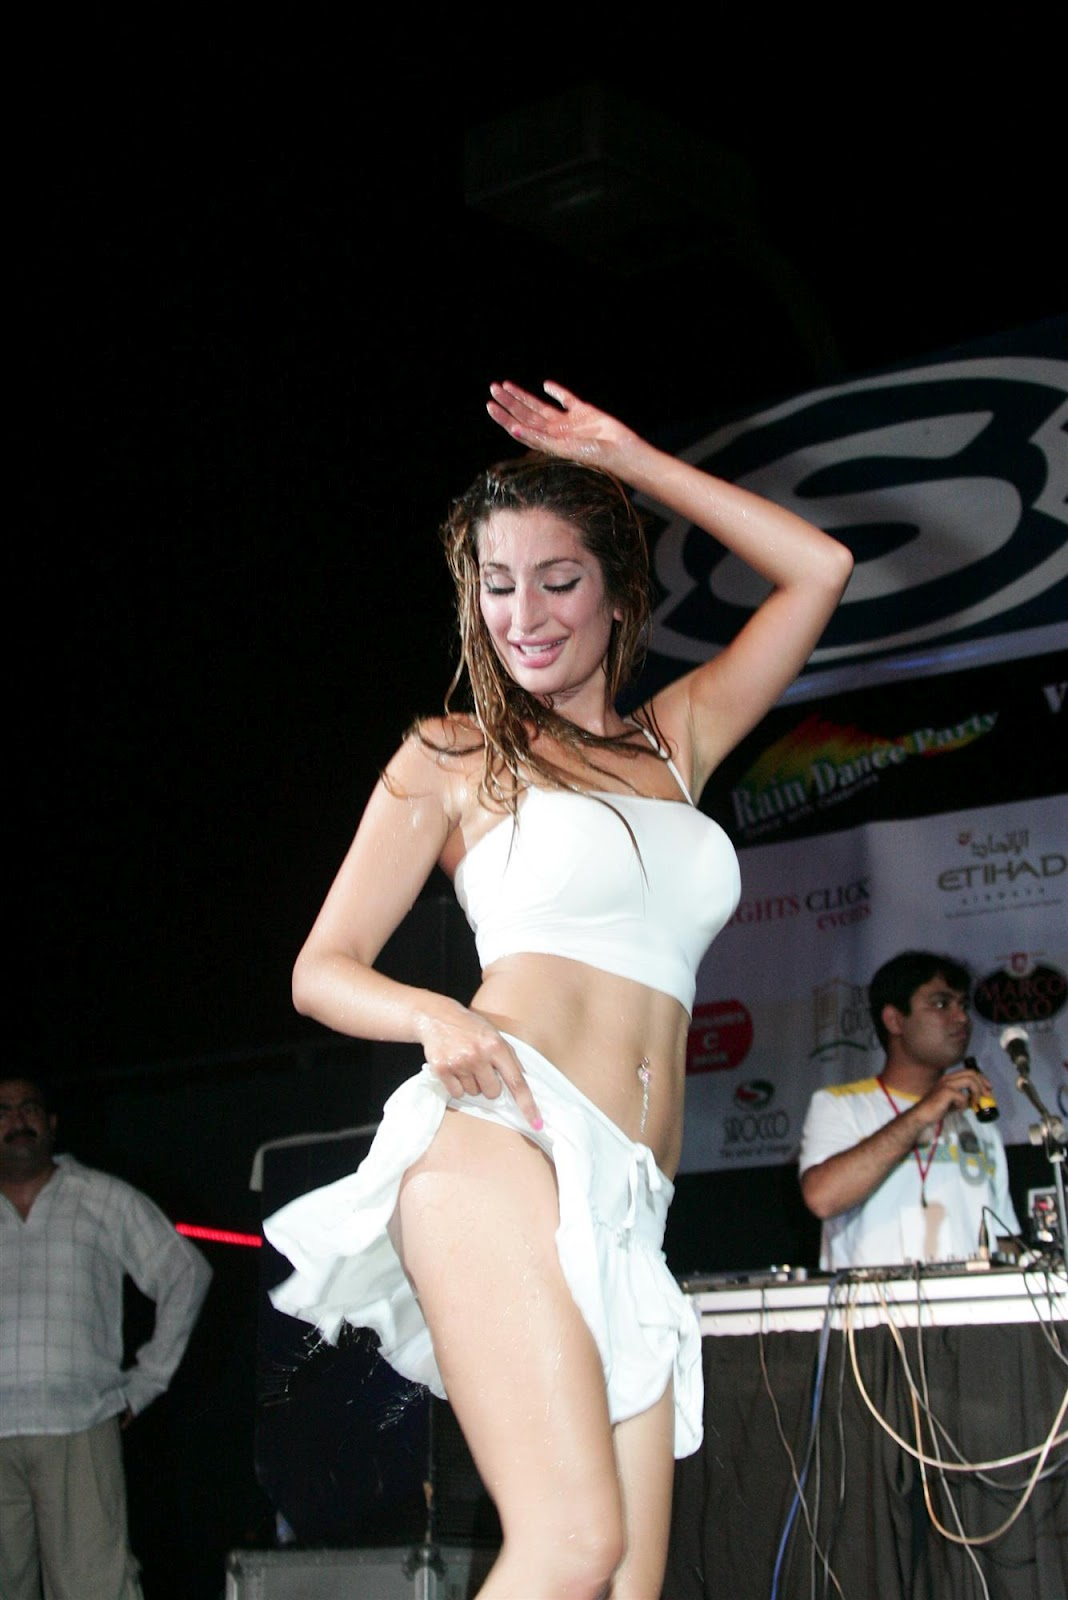 Negar Khan Super Hot Live Performance In White Short Skirt